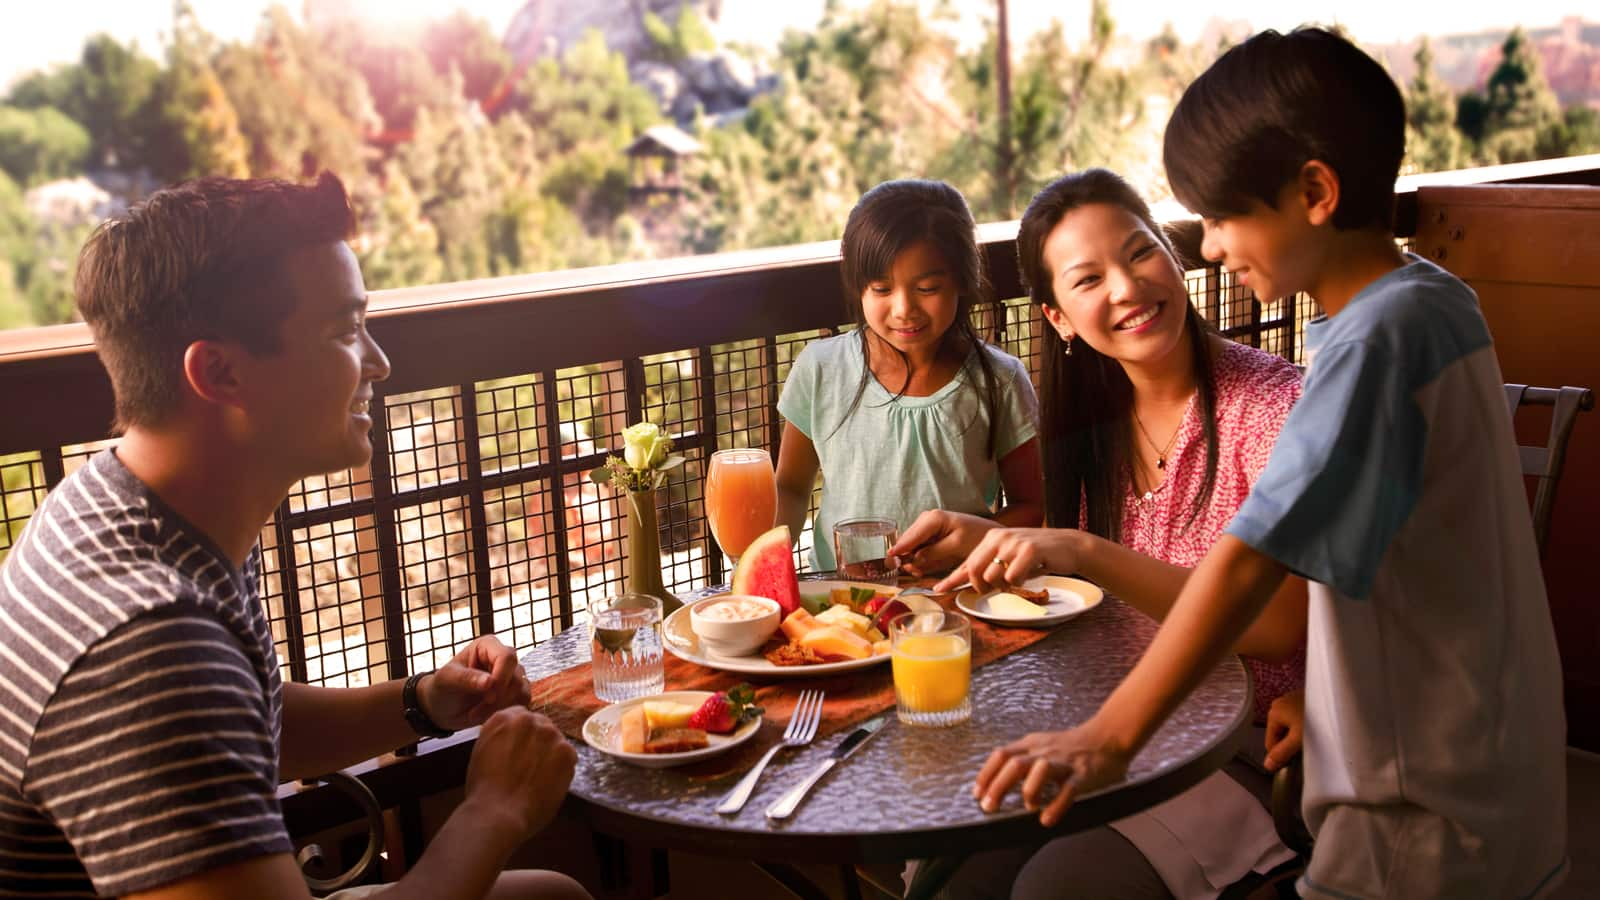 A family of 4 gather around a table with breakfast food on an outdoor balcony